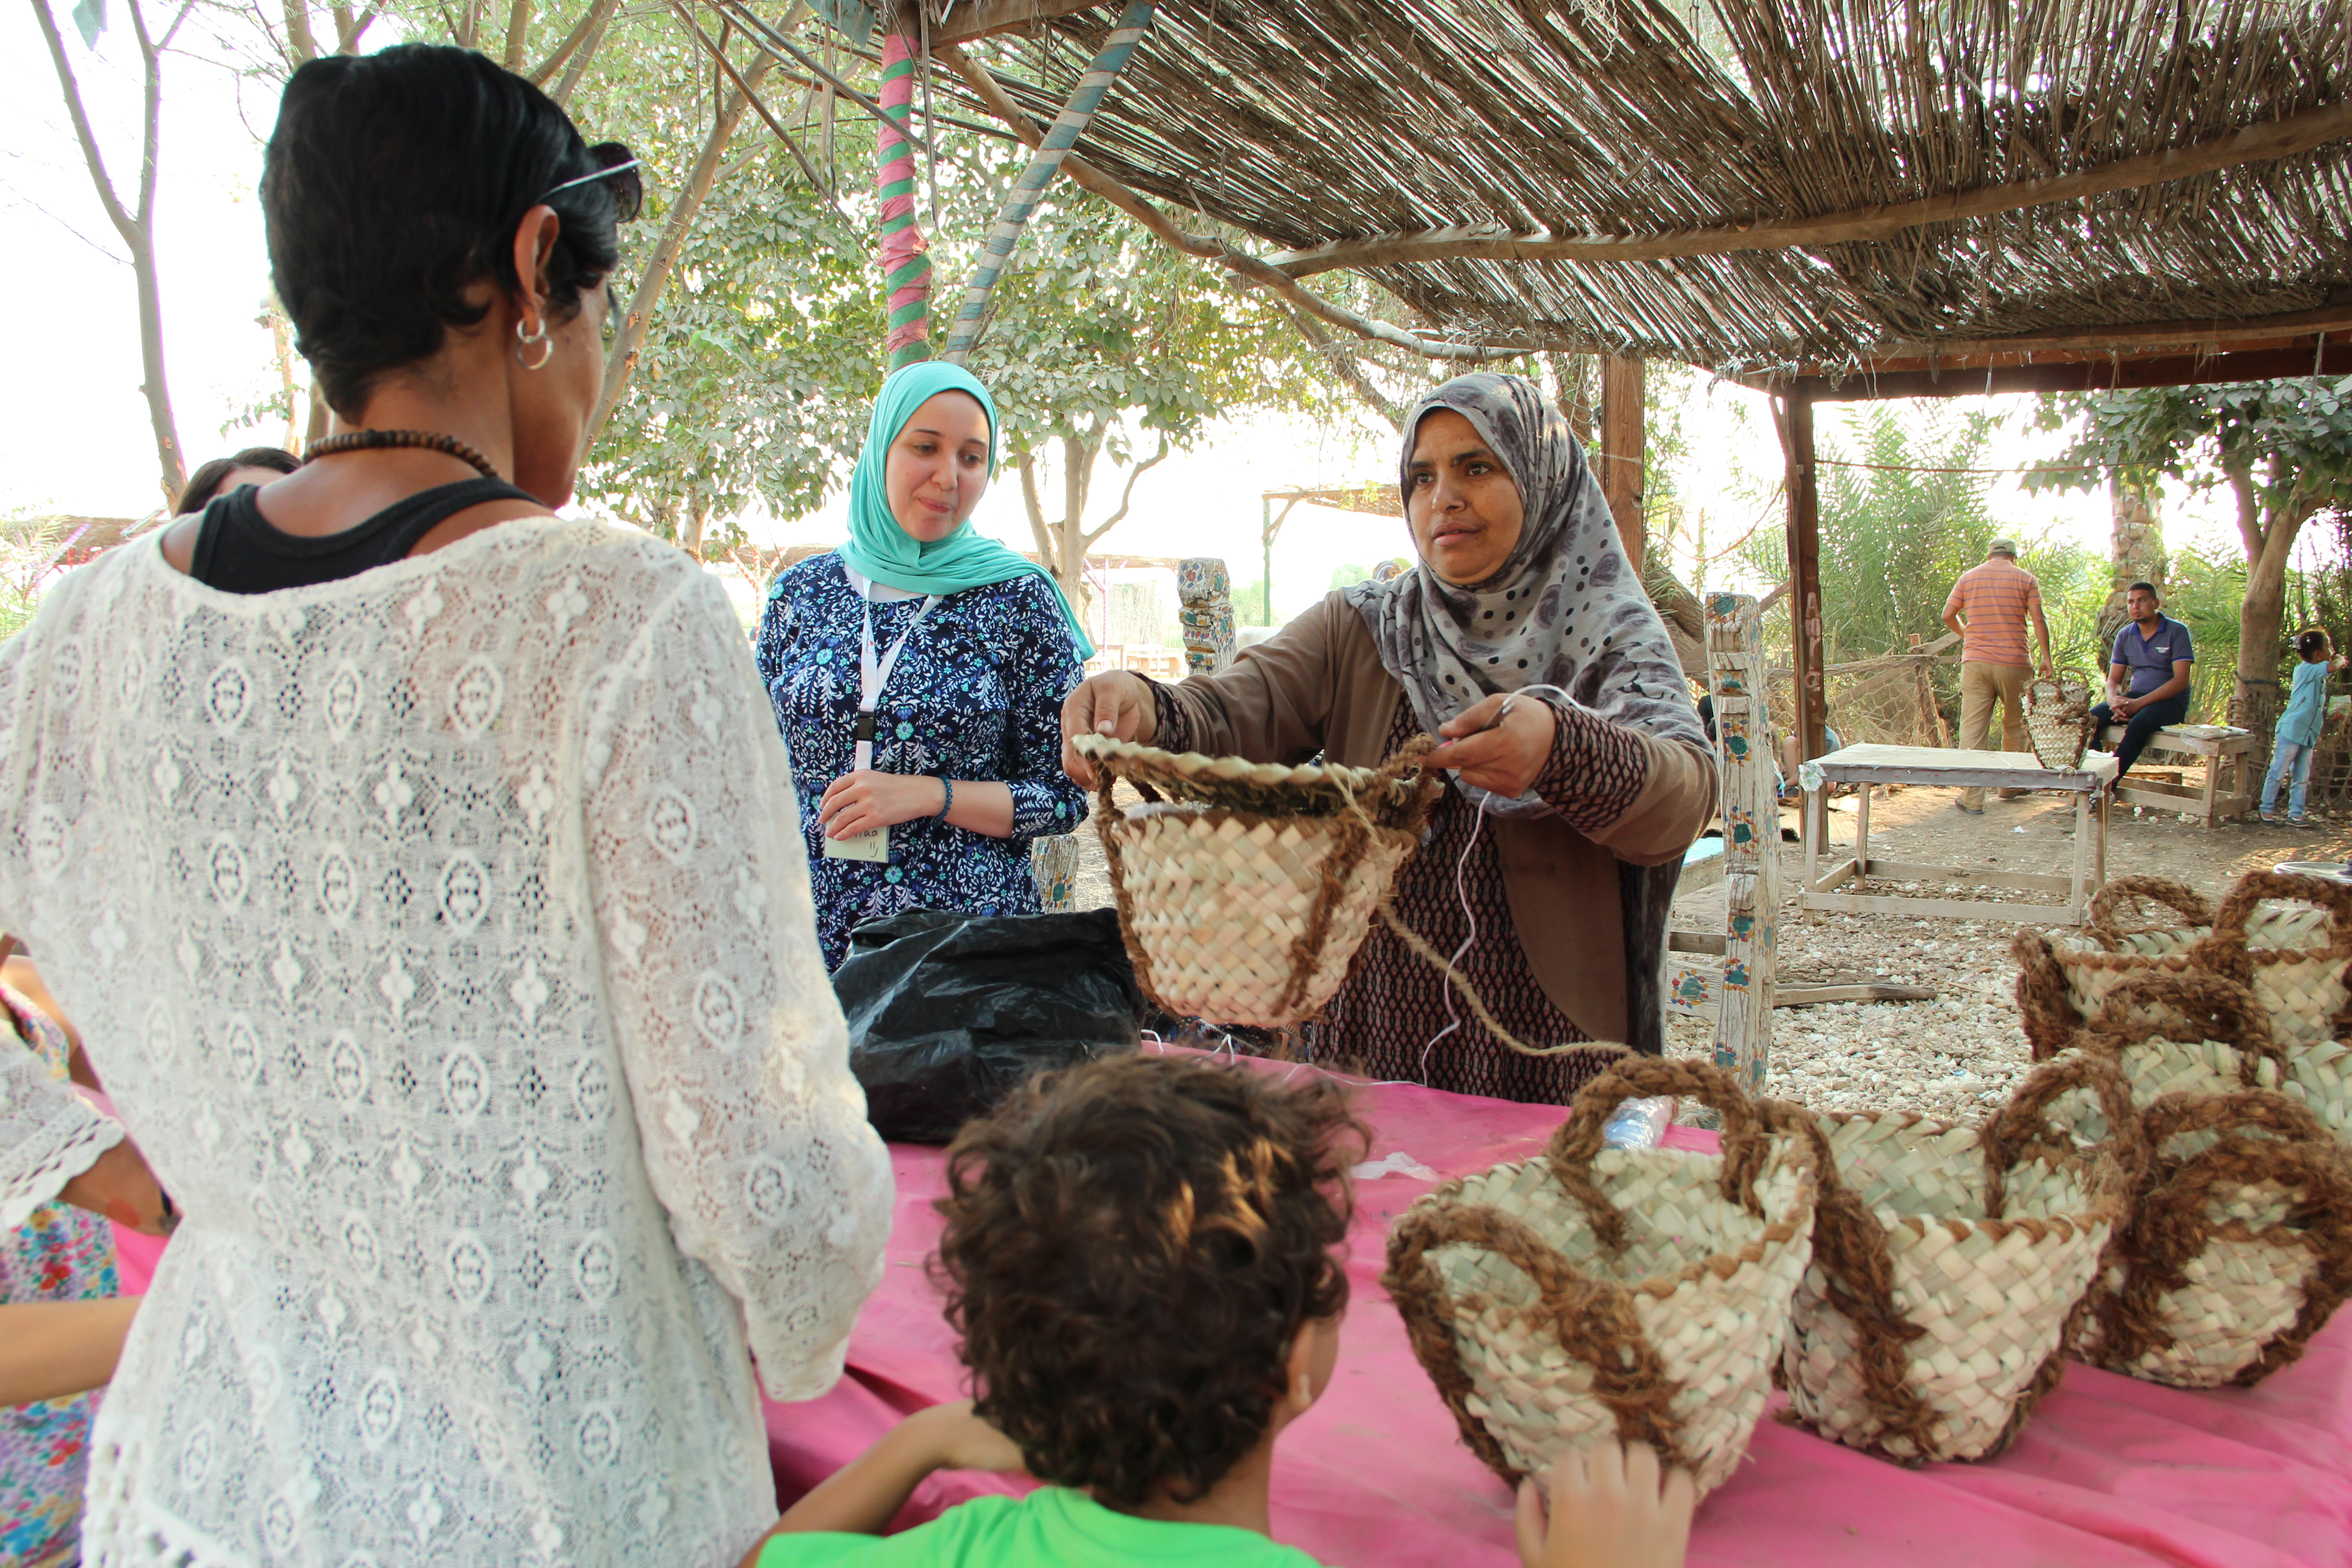 Bag and rope making activities